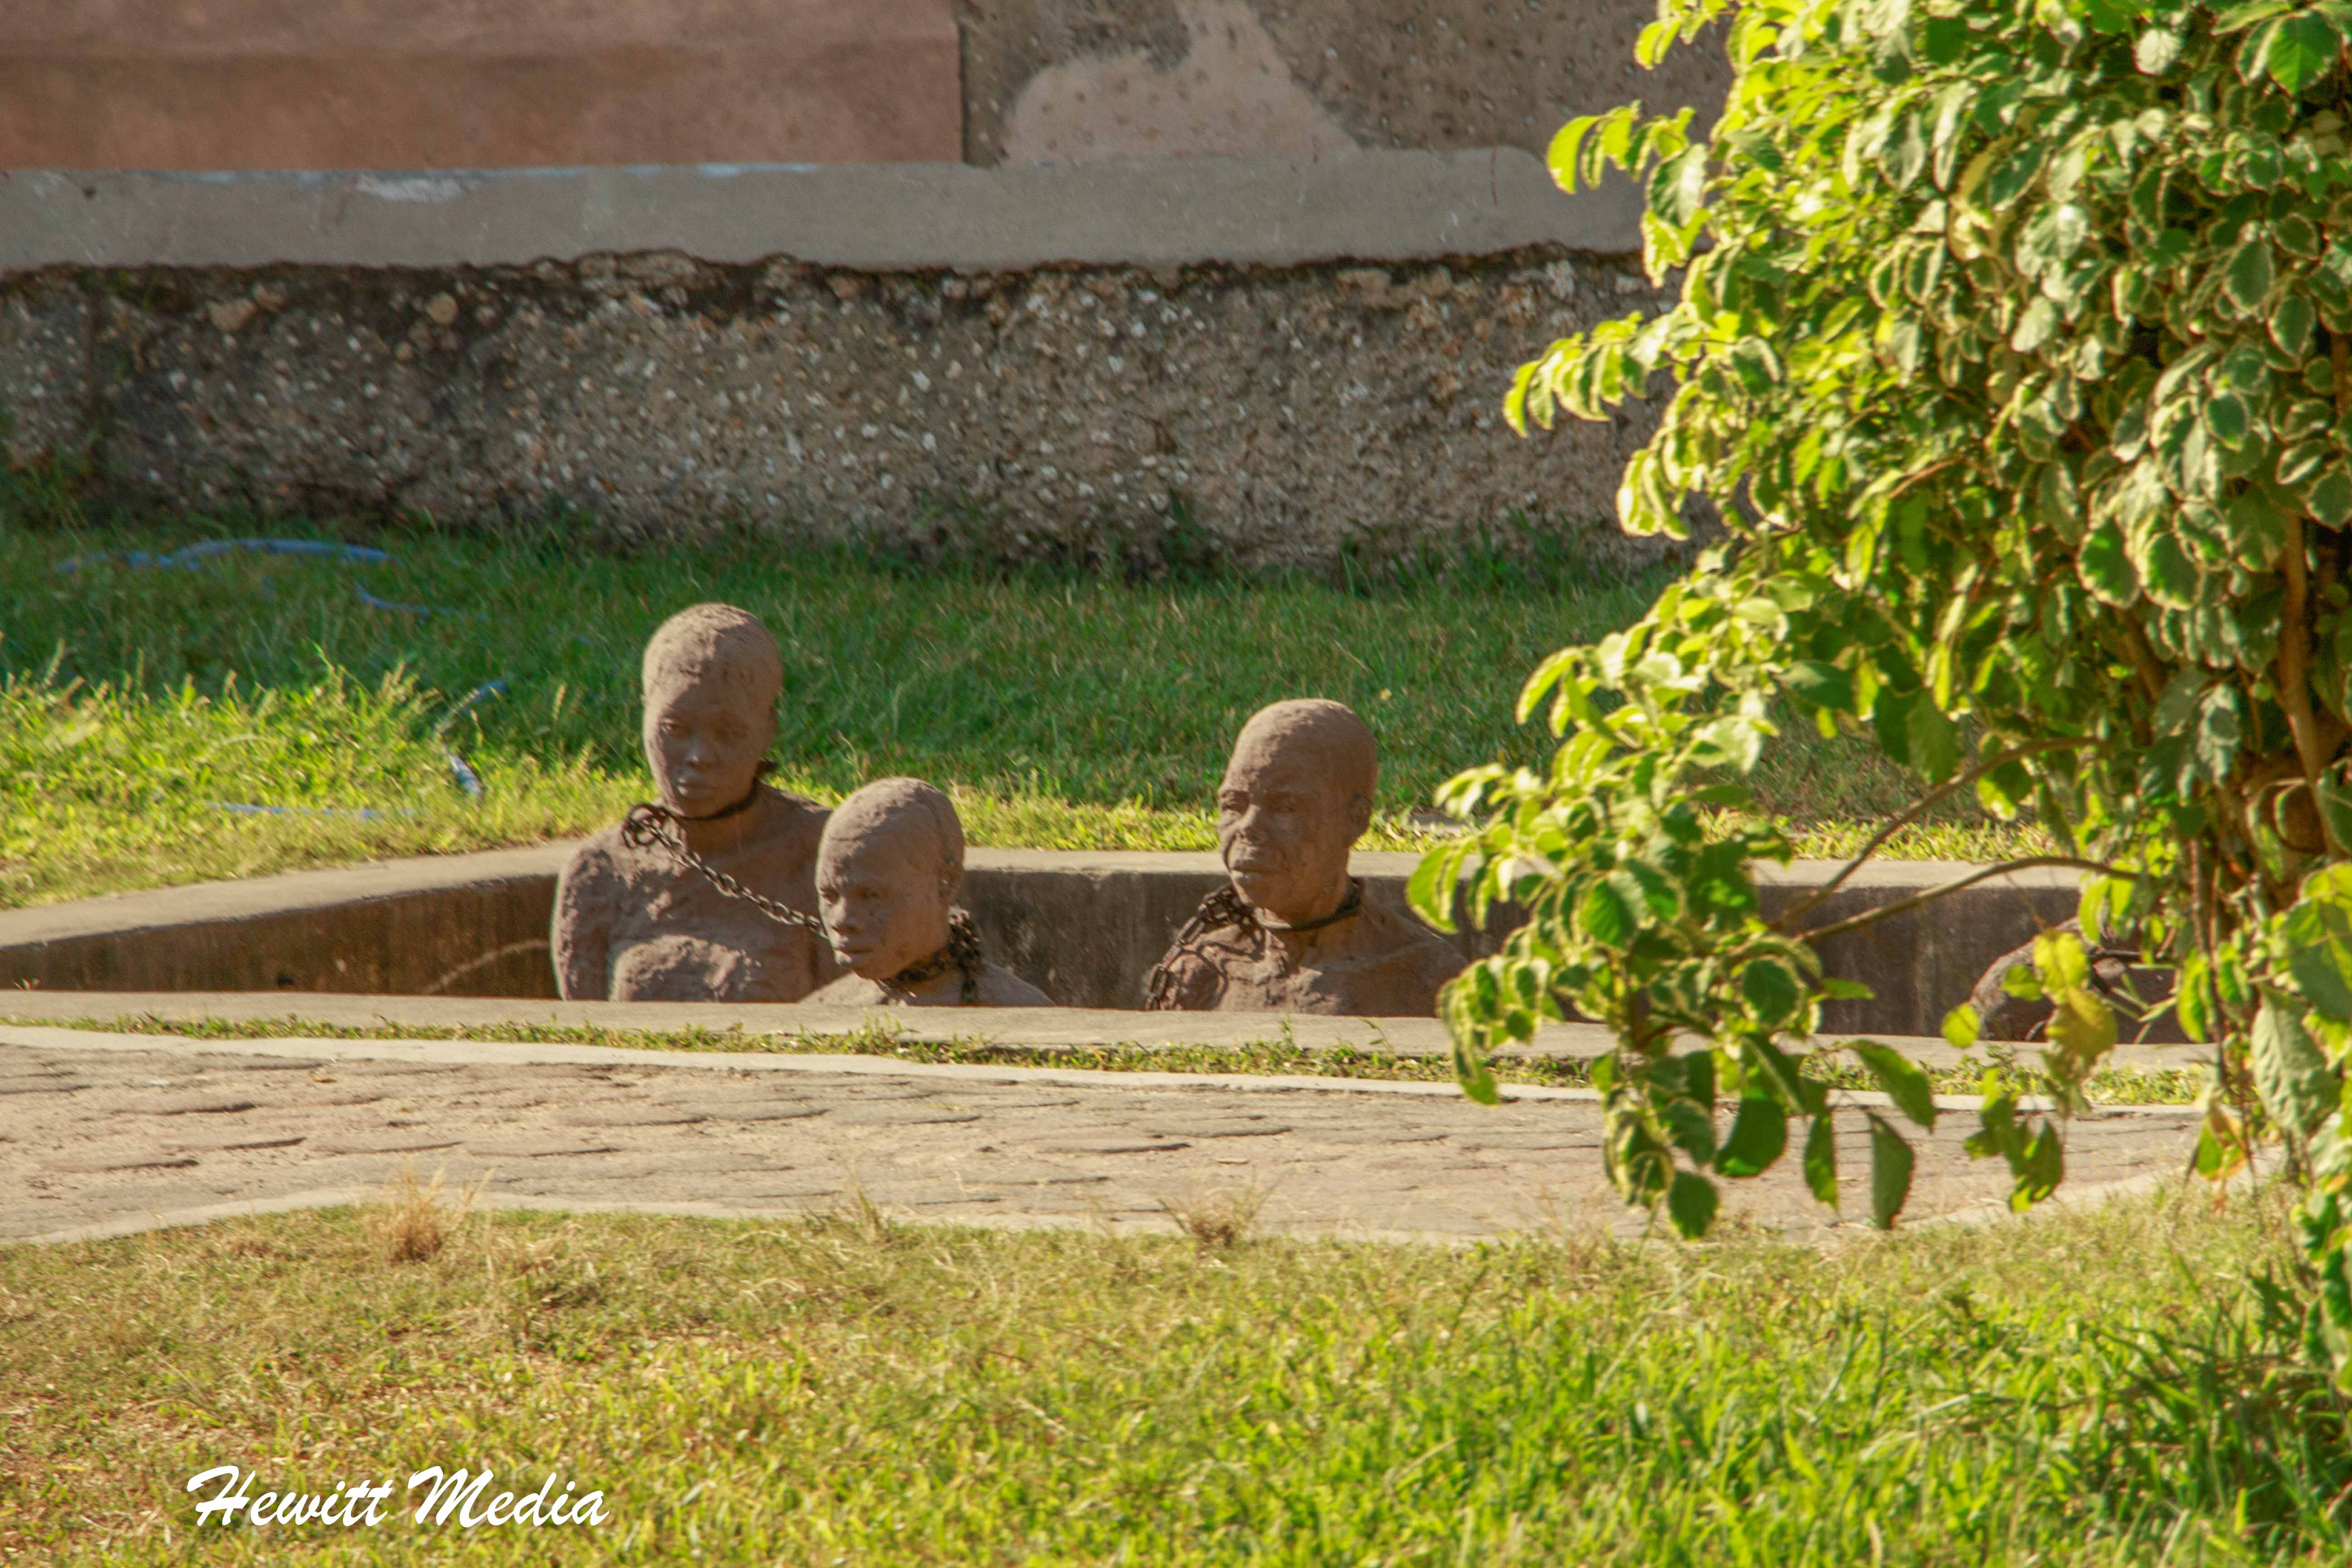 Monument at the old slave market in Stone Town